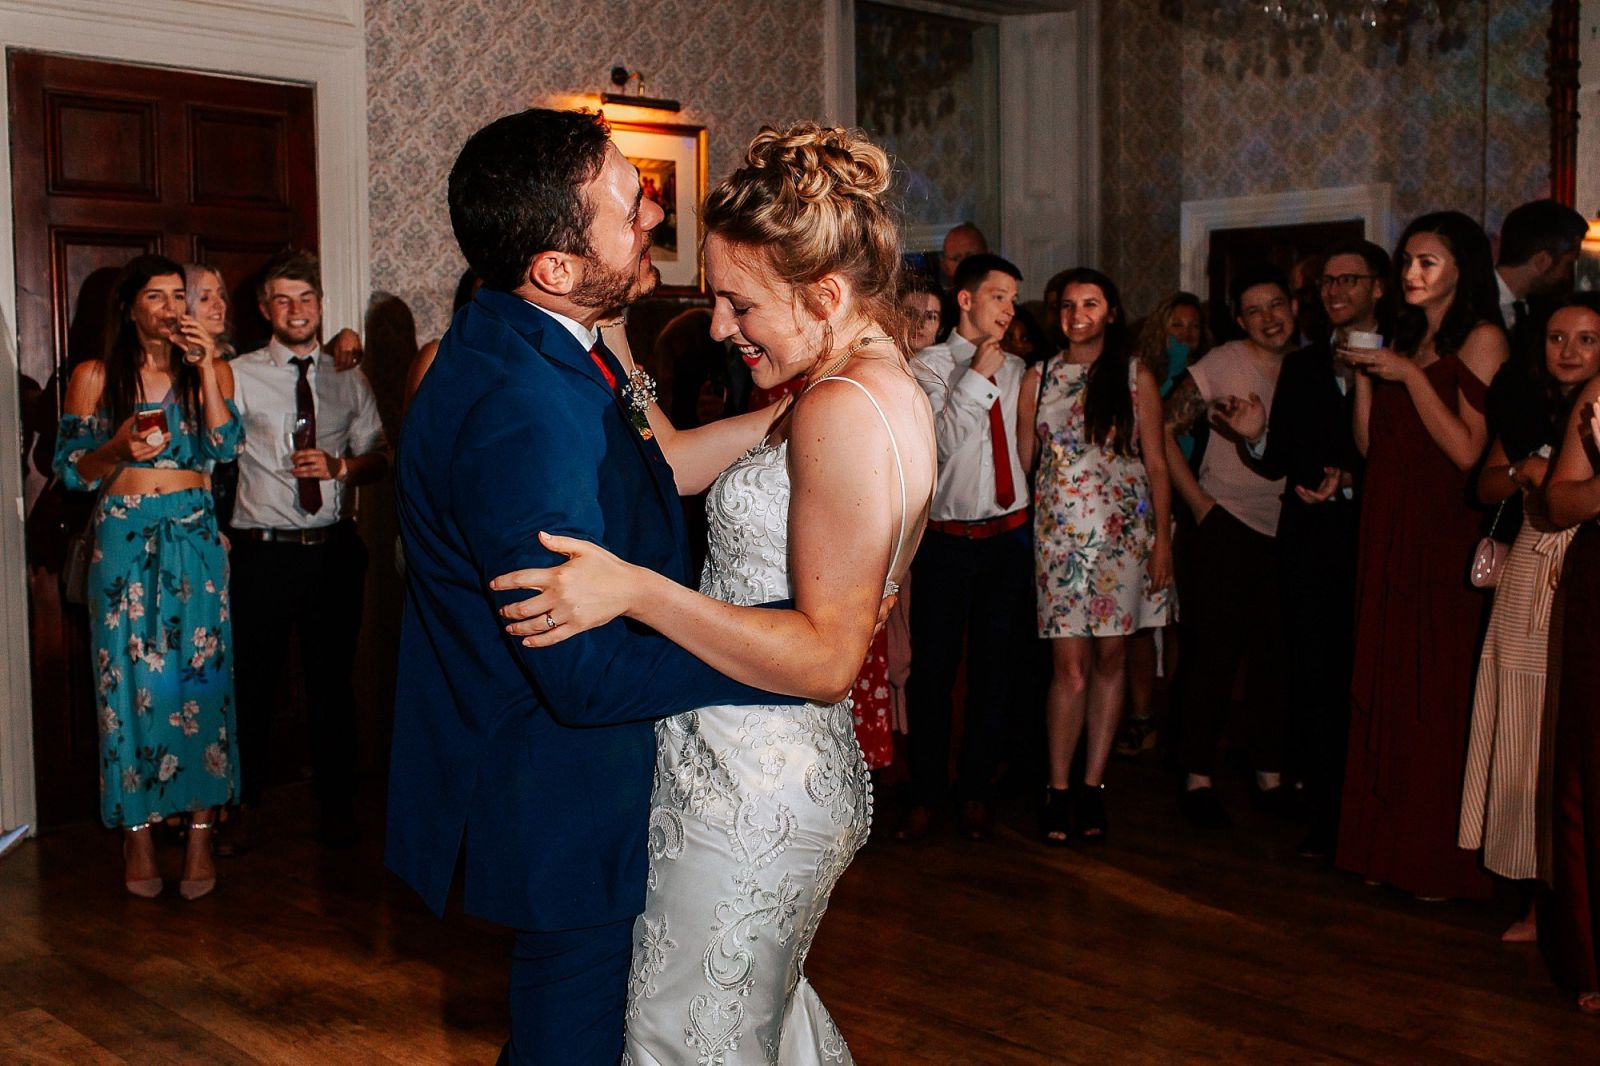 First Dance Limpley Stoke Hotel Wedding Bath Photographer Sheetal Varsani